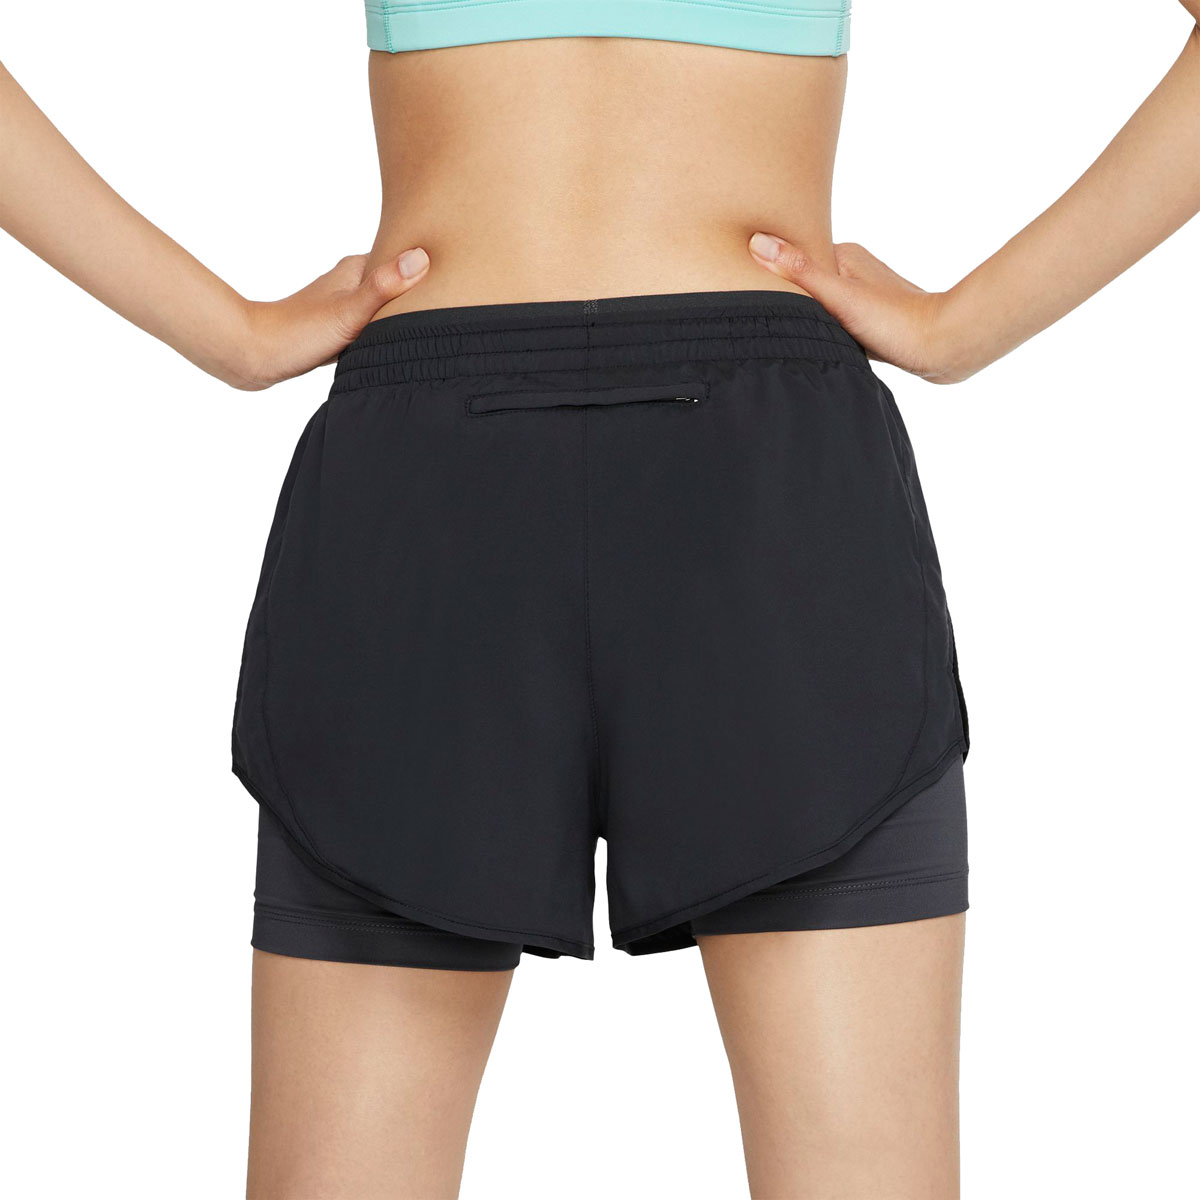 Women's Nike Tempo Luxe 2-in-1 Running Shorts - Color: Black/Anthracite/Reflective Silver - Size: L, Black/Anthracite/Reflective Silver, large, image 2